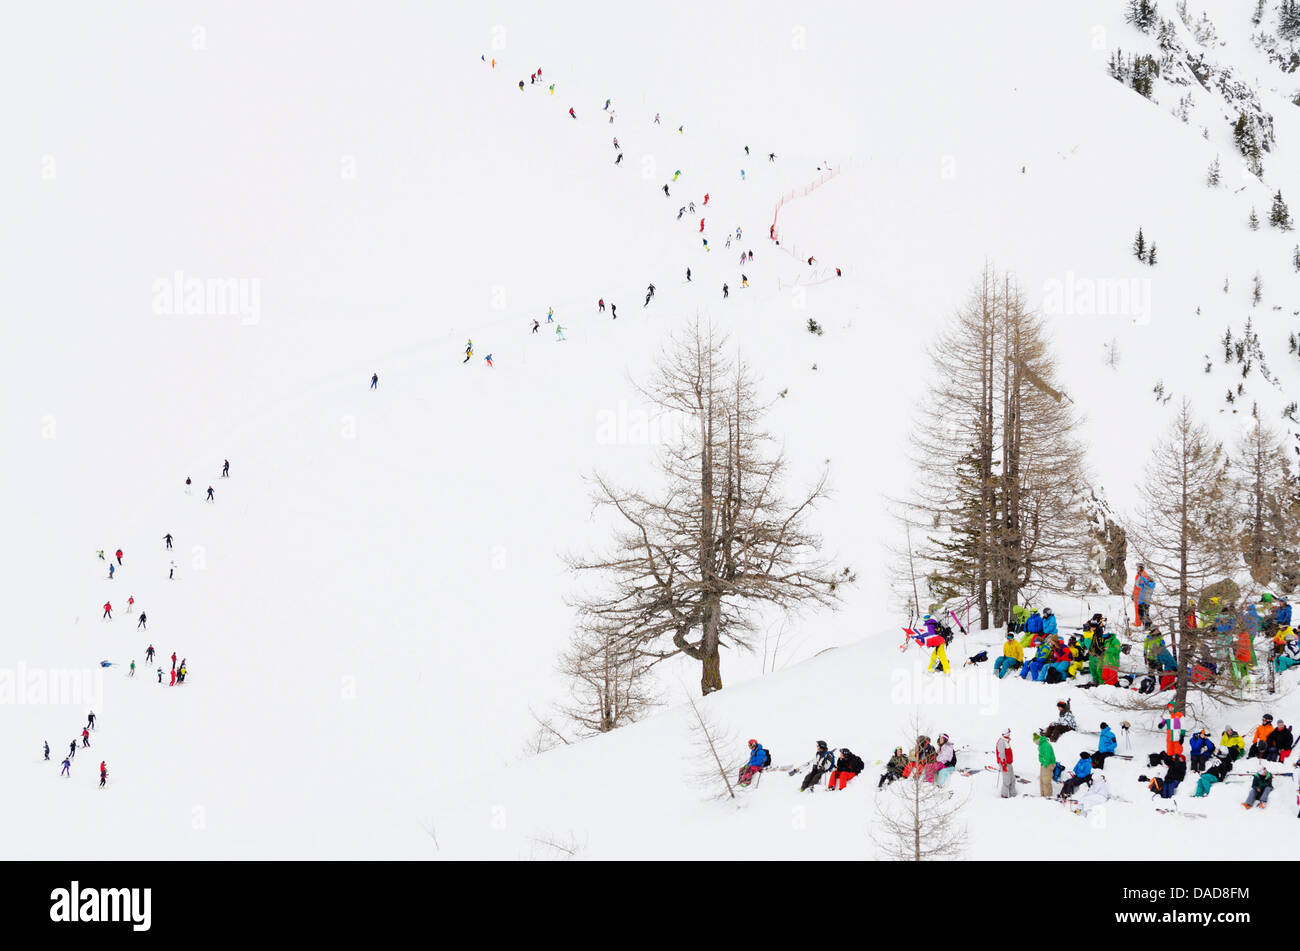 Crowded piste, Brevant ski area, Chamonix, Haute-Savoie, French Alps, France, Europe - Stock Image